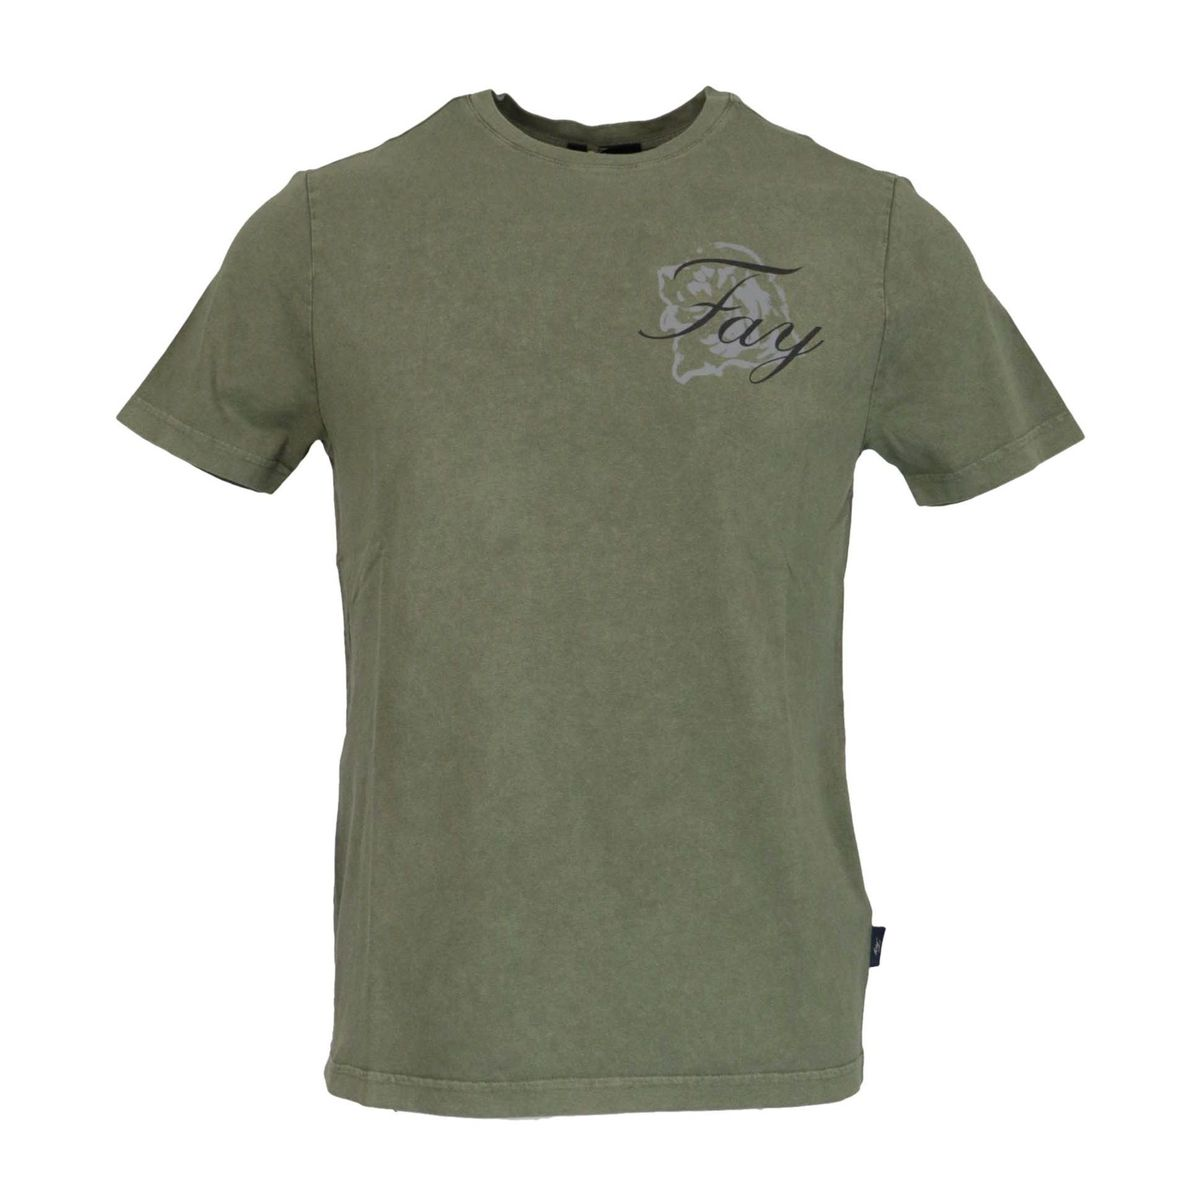 Garment dyed cotton short sleeve t-shirt Military Fay